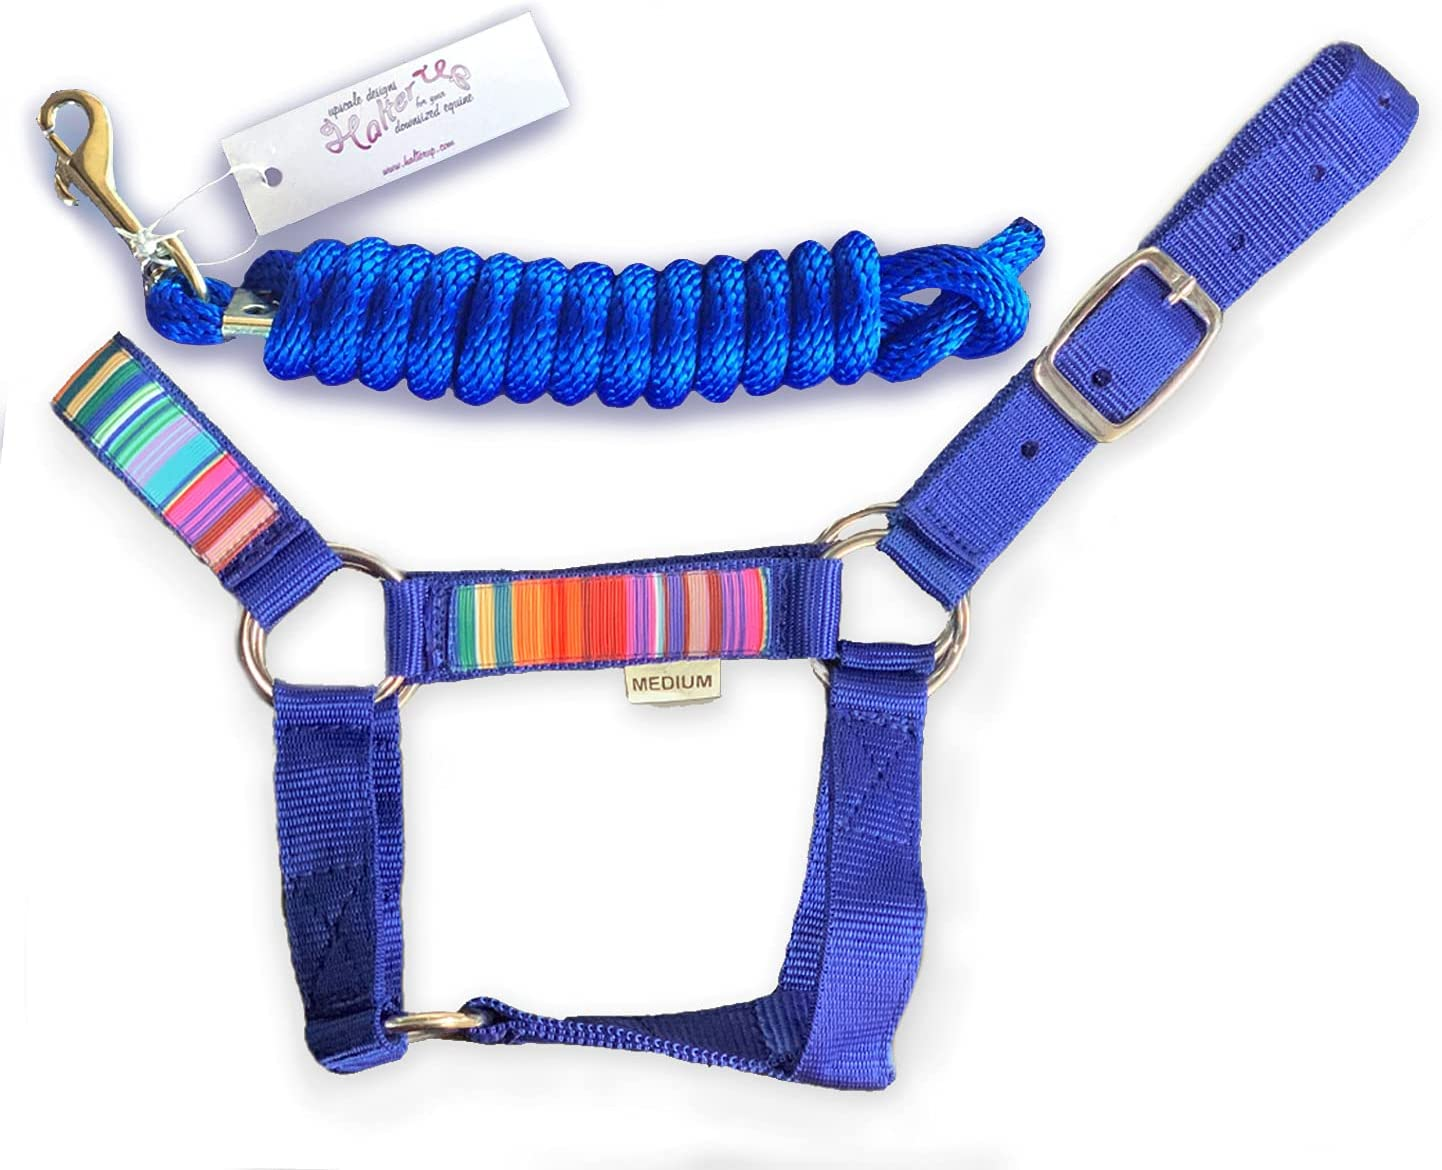 HalterUp Max 88% OFF Cute and Stylish Miniature Rope Donkey Lead specialty shop Halters